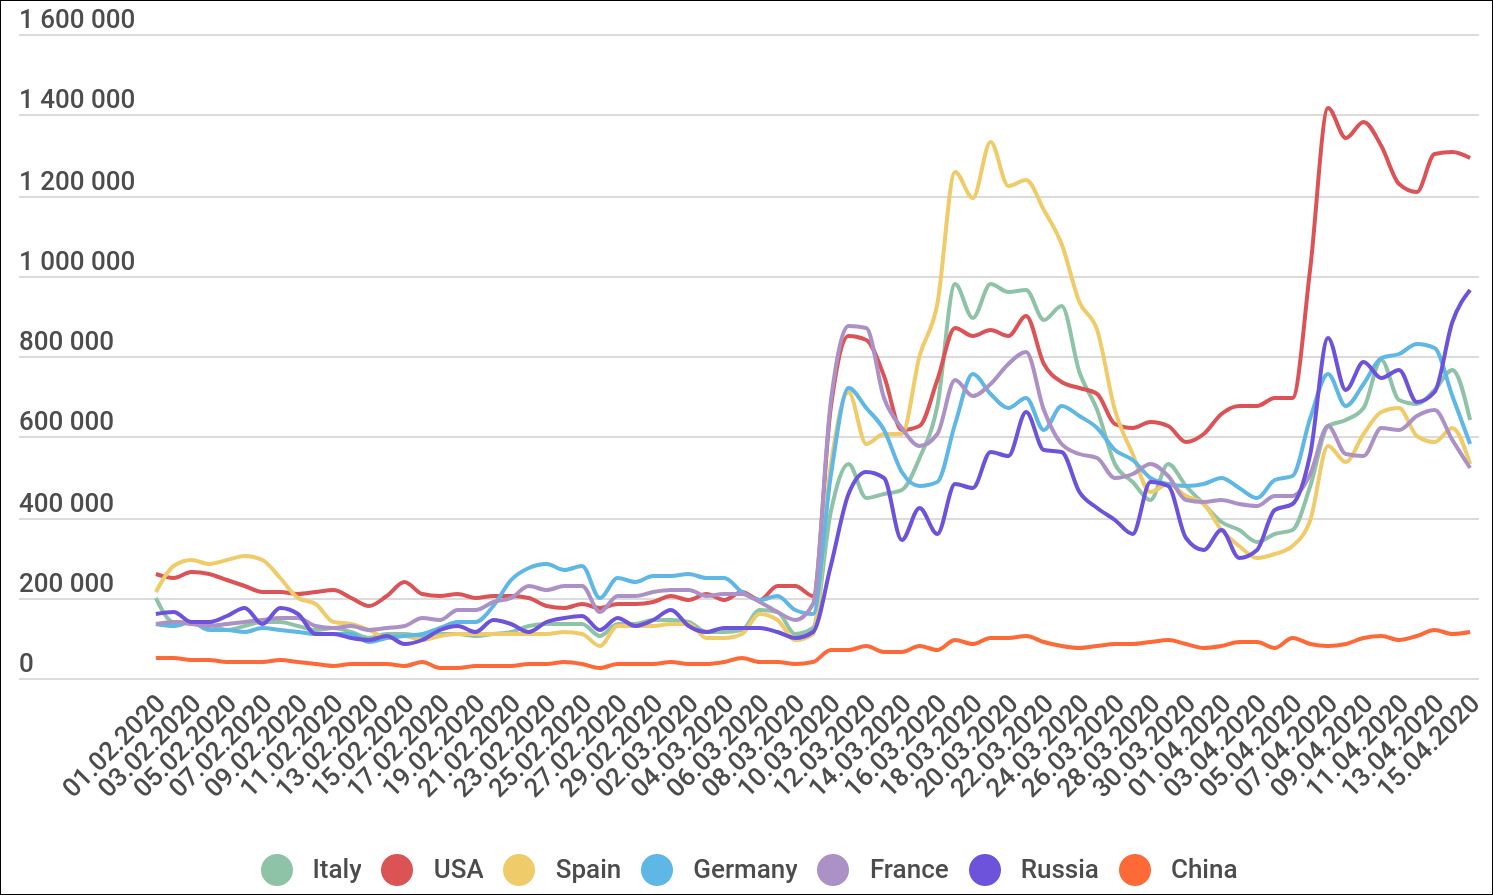 Growth in the number of RDP bruteforce attacks